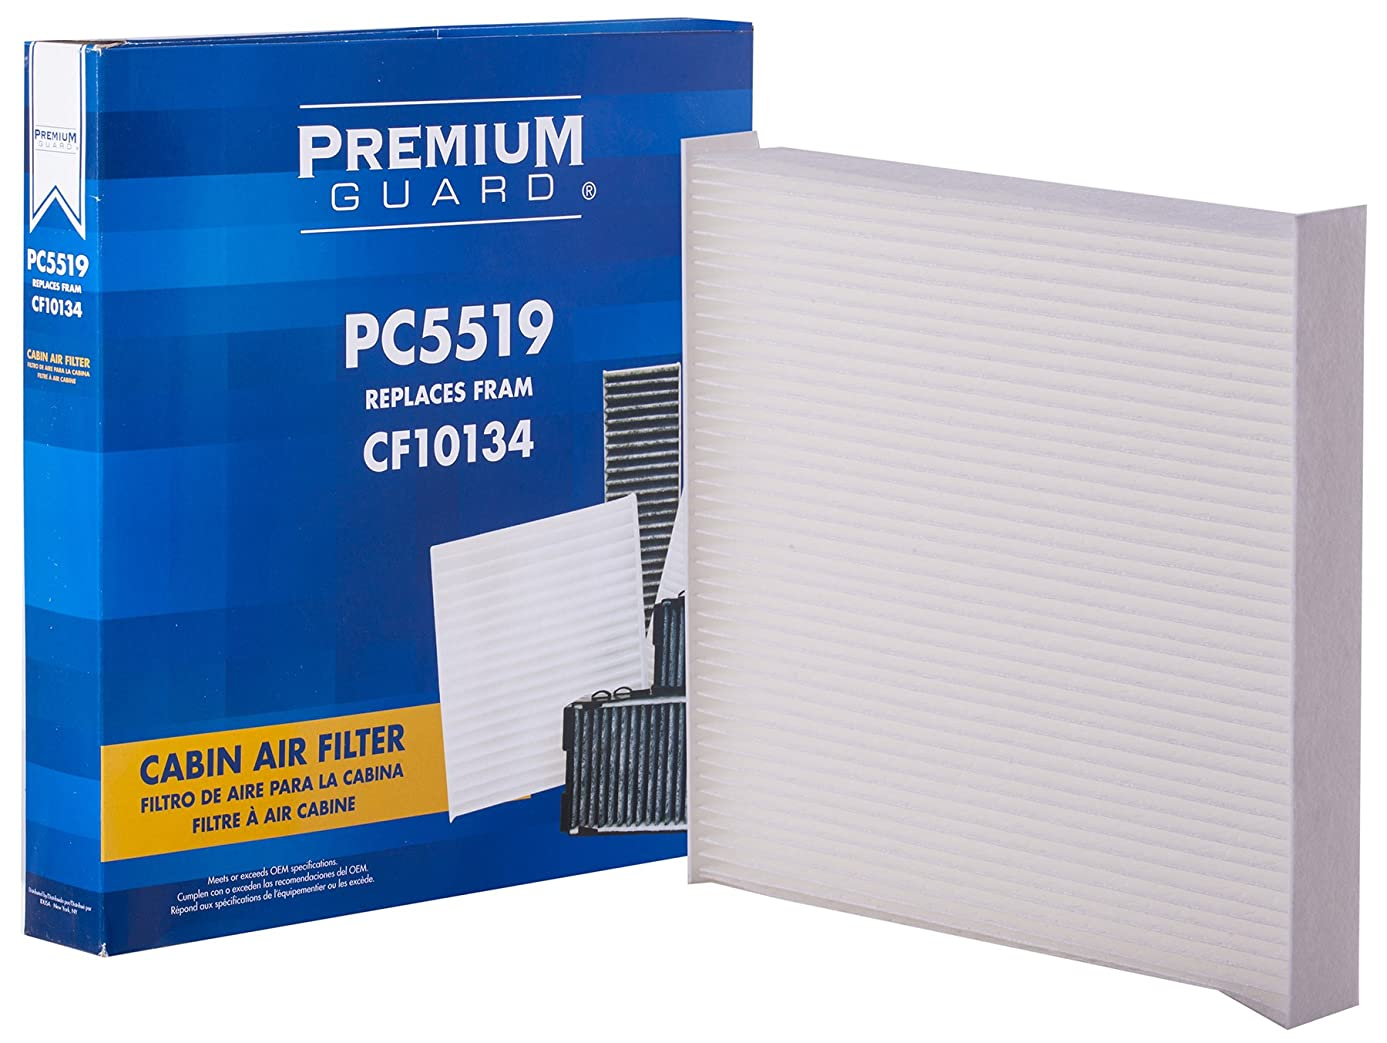 PG PC5519 Cabin Air Filter| Fits 2007-11 Acura CSX, 2013-18 ILX, 2007-18 MDX, 2007-18 RDX, 2005-12 RL, 2014-19 RLX, 2004-14 TL, 2015-19 TLX, 2004-14 TSX, 2010-13 ZDX, 2003-18 Honda Accord